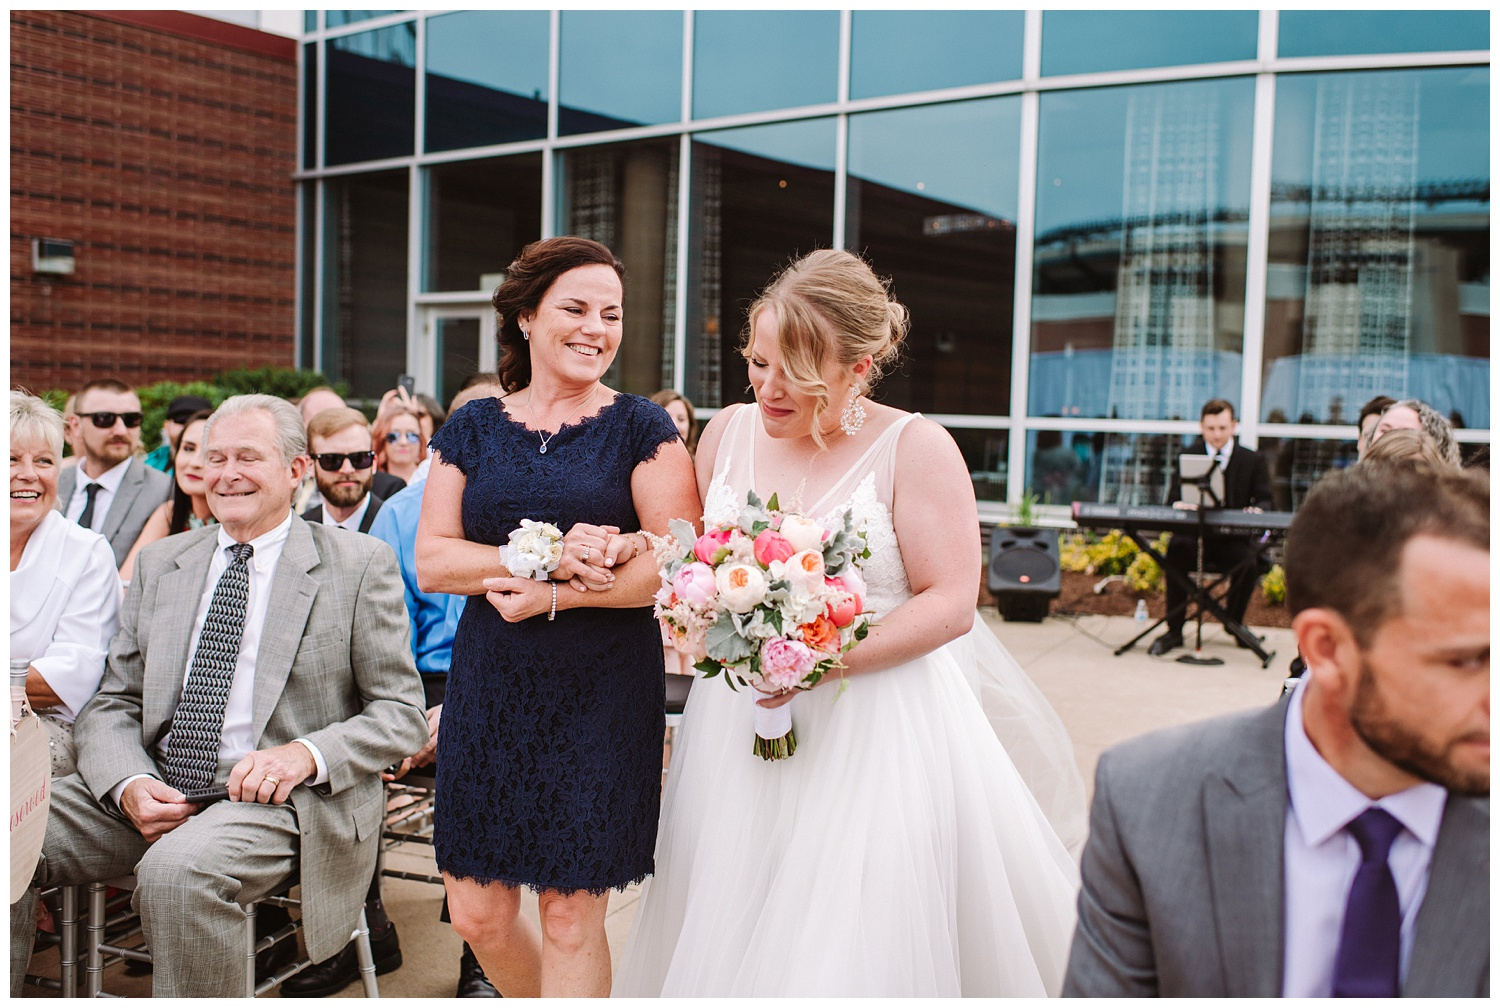 Renaissance Hotel Gillette Stadium Wedding Photographer64.jpg